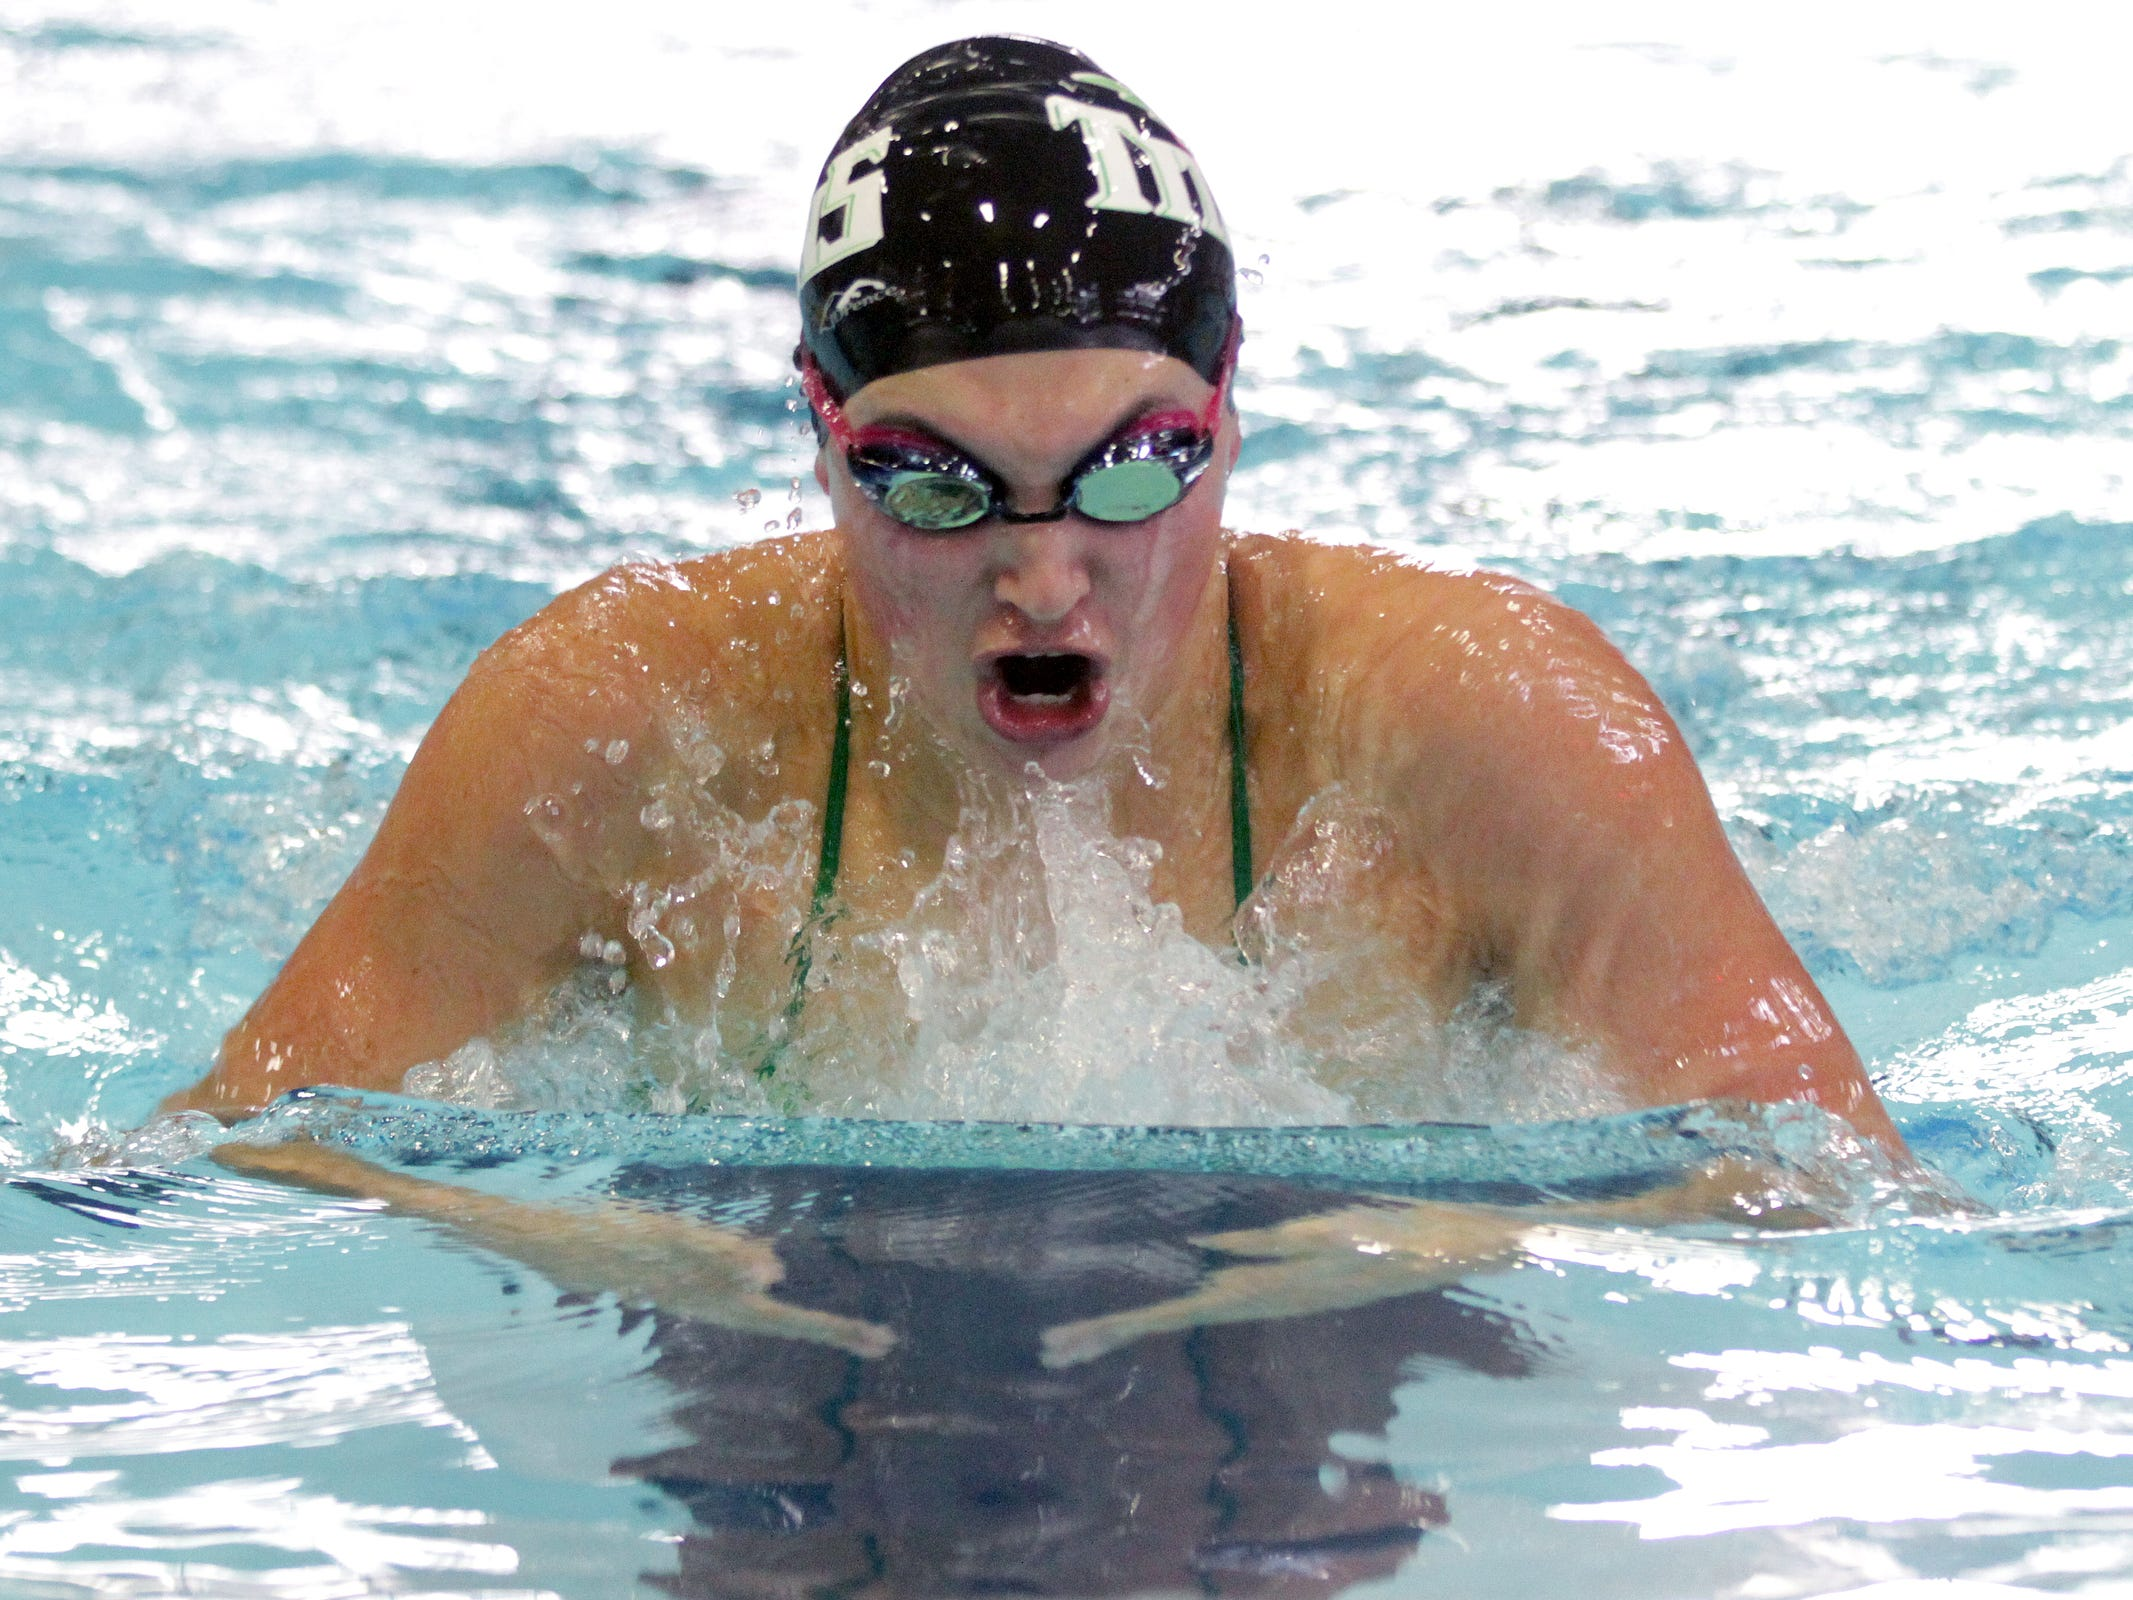 West Salem senior Mackenzie Rumrill competes in the 200 yard individual medley on the first day of the Greater Valley Conference high school swim meet at the McMinnville Aquatic Center on Friday, Feb. 13, 2015.